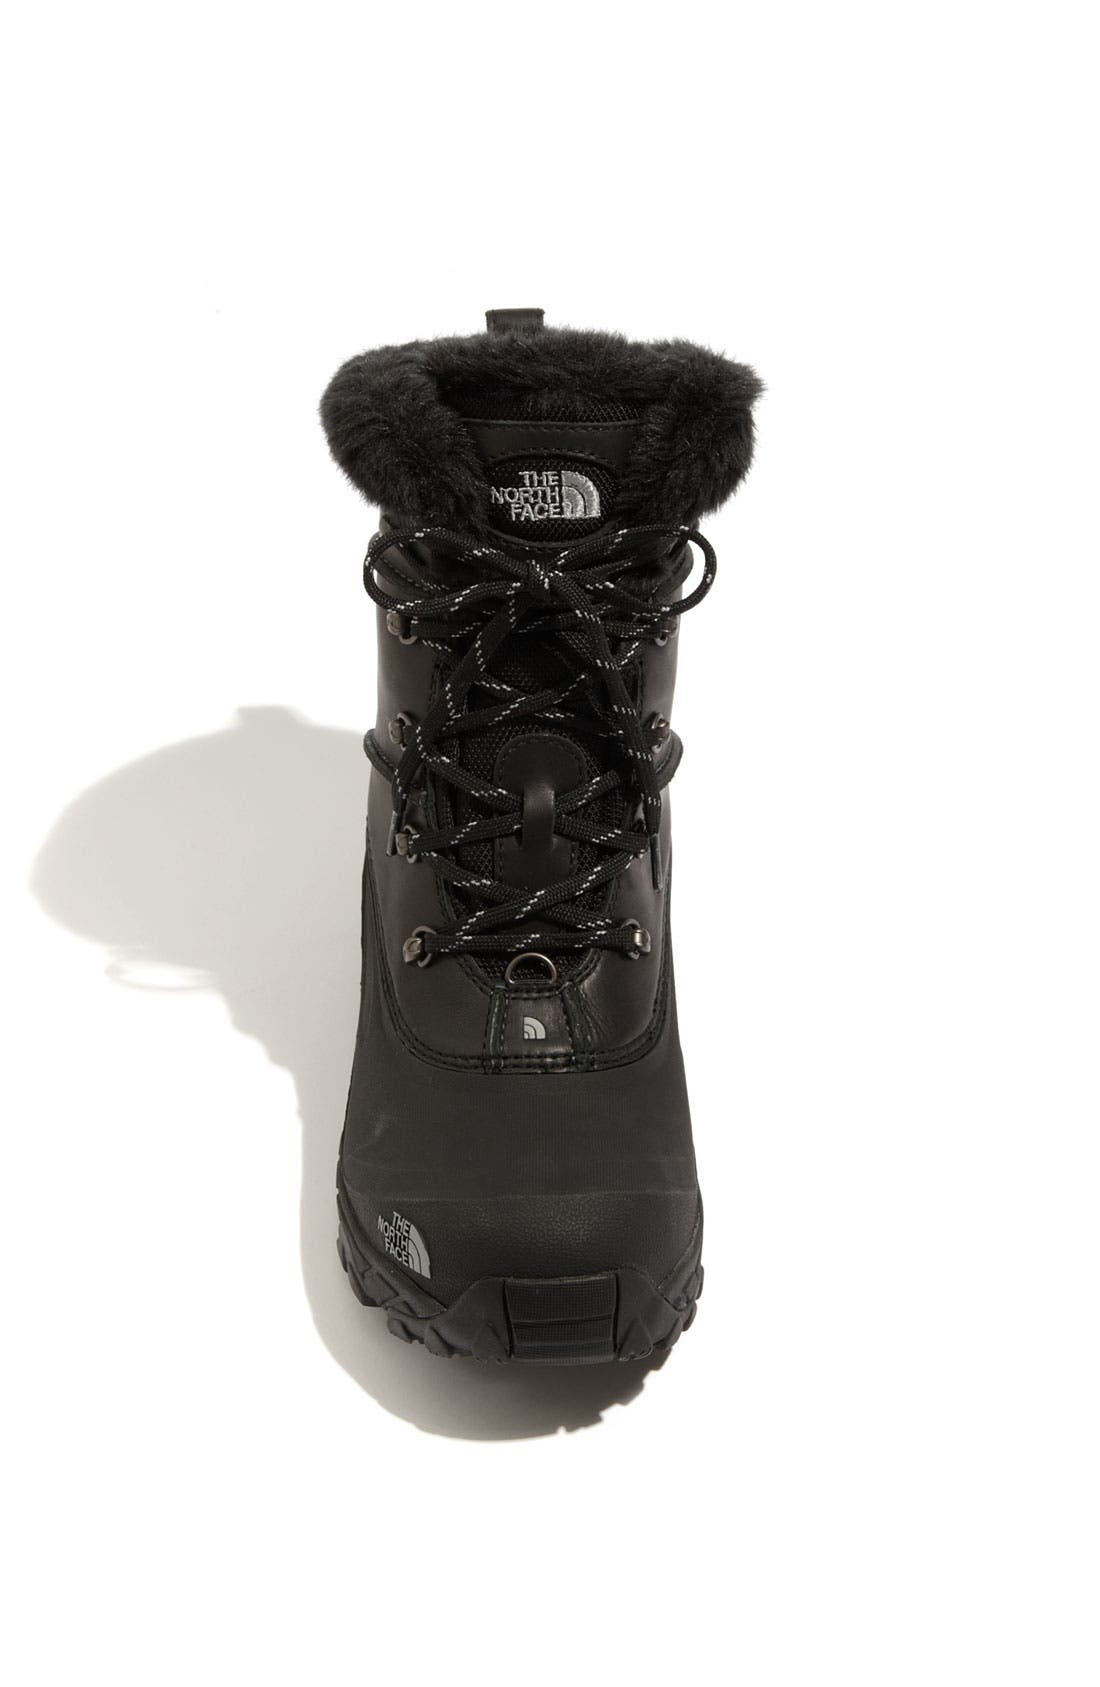 THE NORTH FACE,                             'McMurdo II' Boot,                             Alternate thumbnail 2, color,                             001